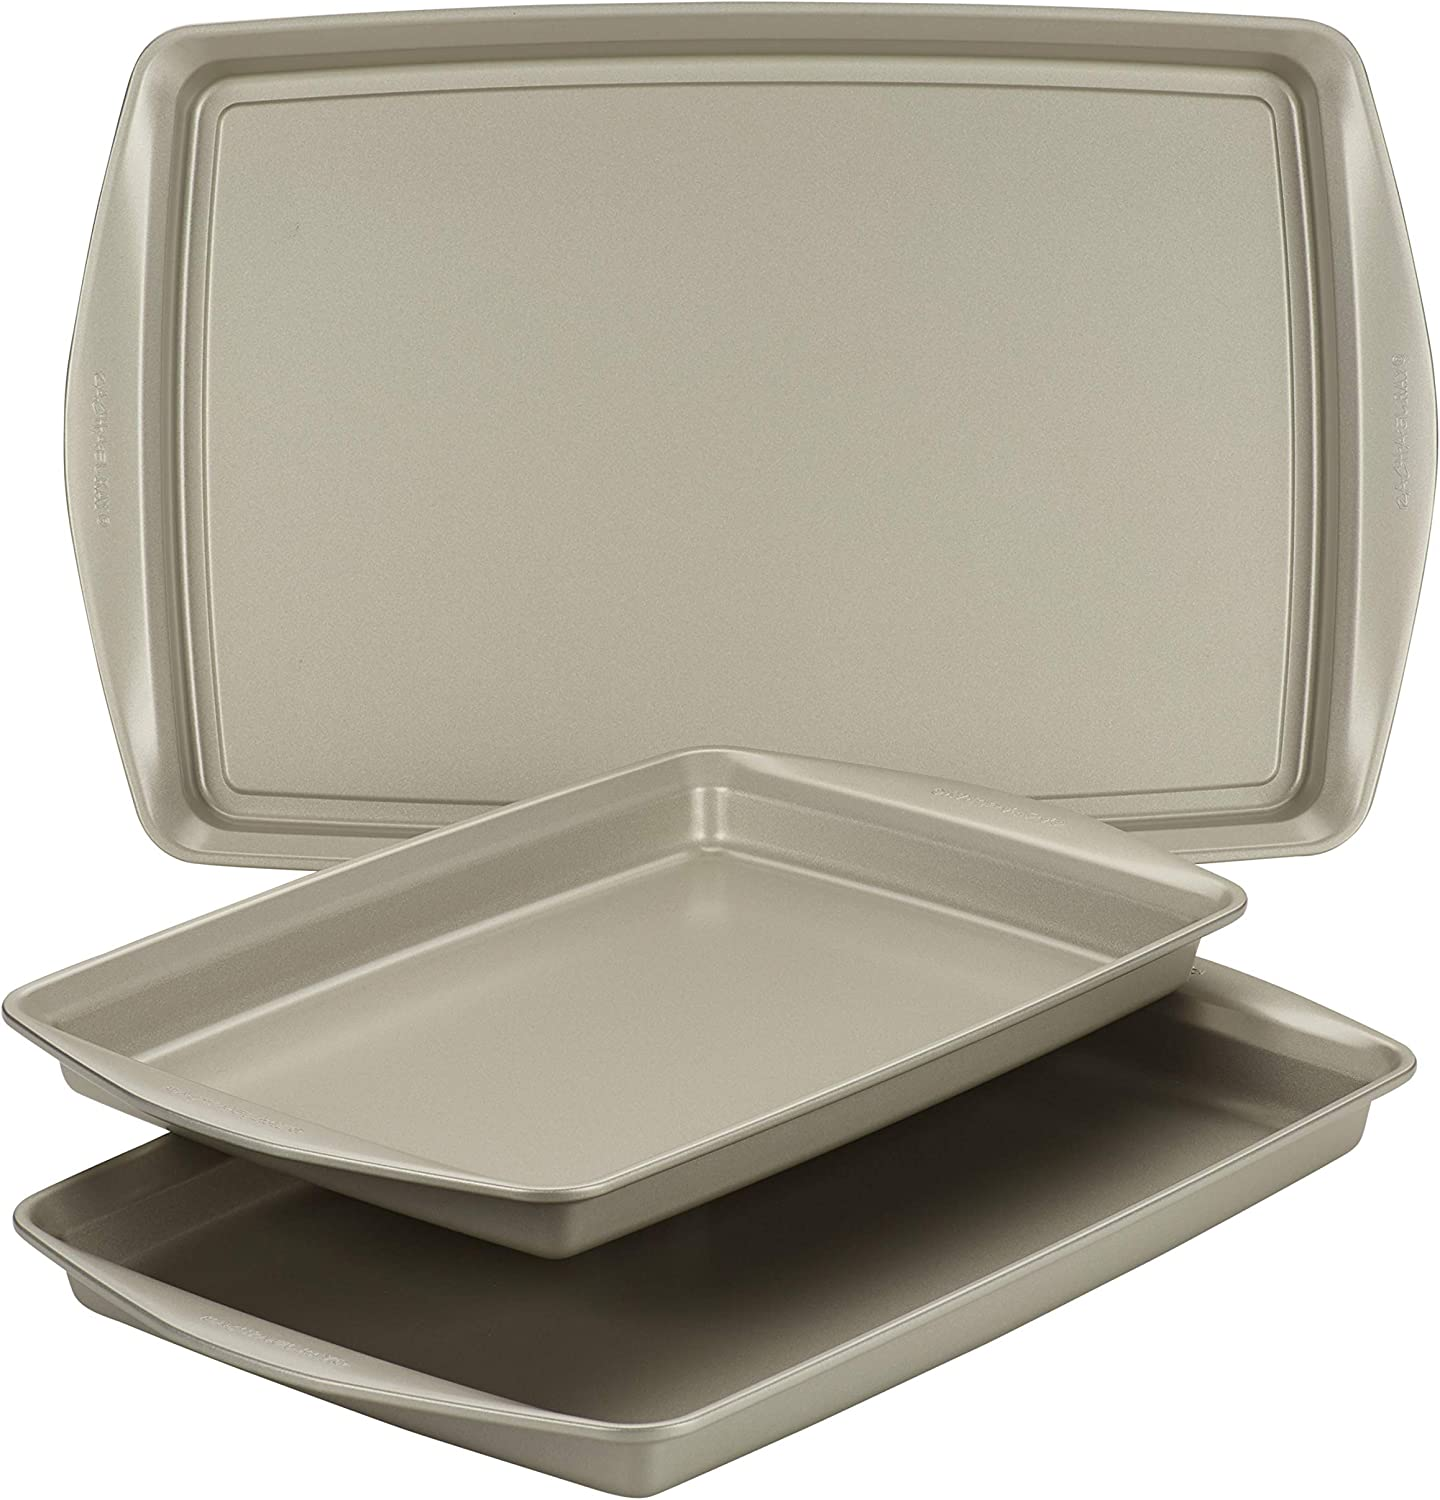 Rachael Ray Bakeware Nonstick Cookie Pan Set Gray with Agave Blue Grips 3-Piece